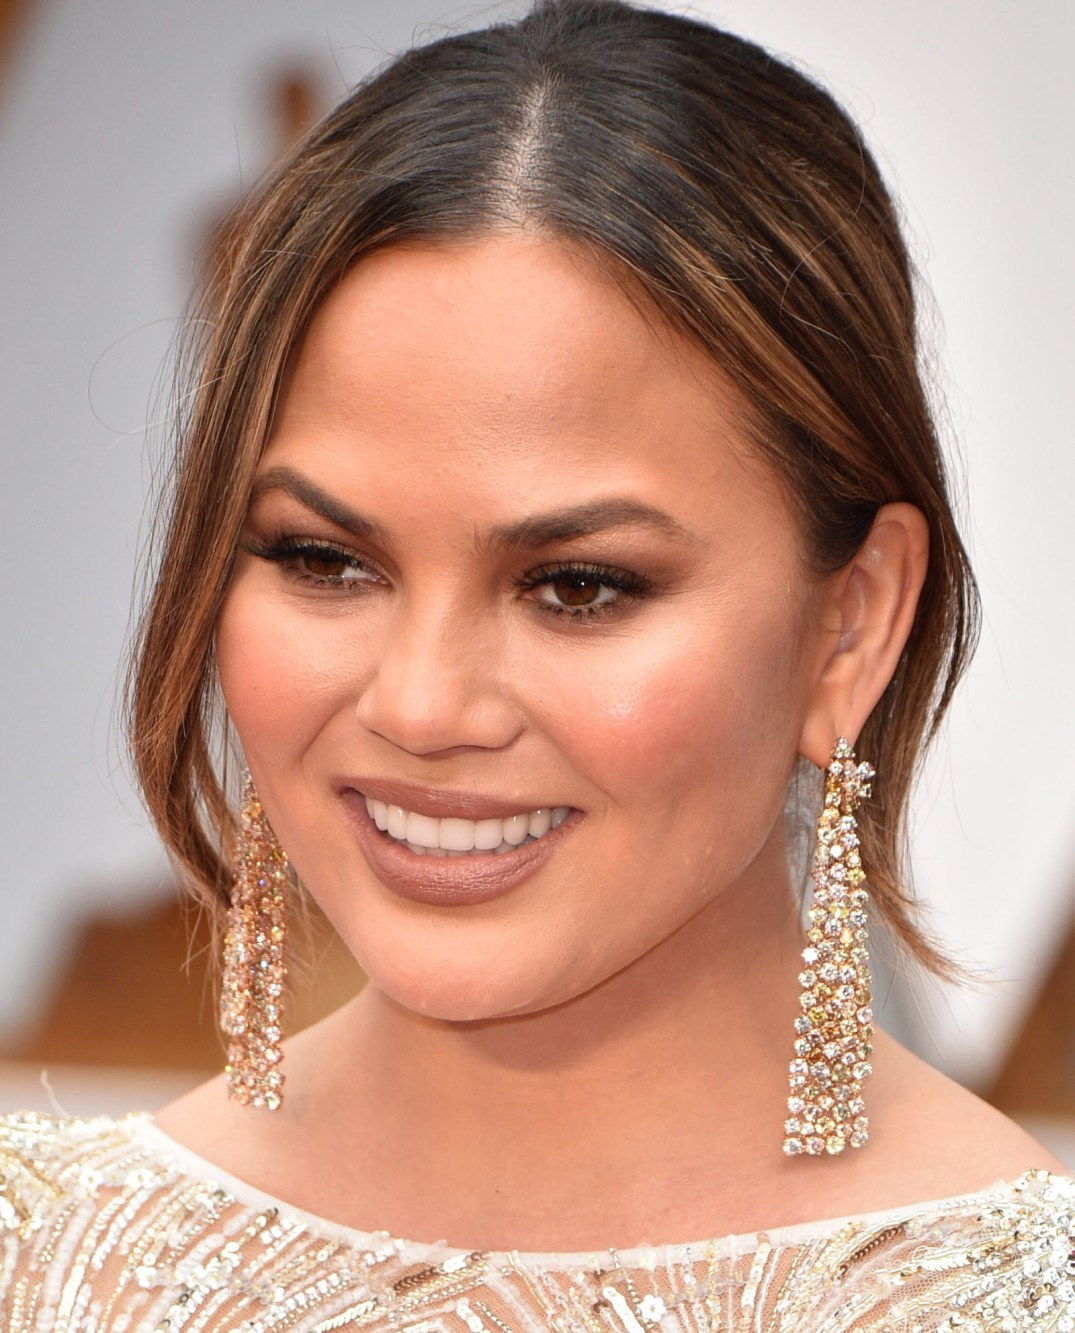 Chrissy Teigen Shimmers In Diamond Dangler Earrings By Lorraine Schwartz. PC- Harper's Bazaar